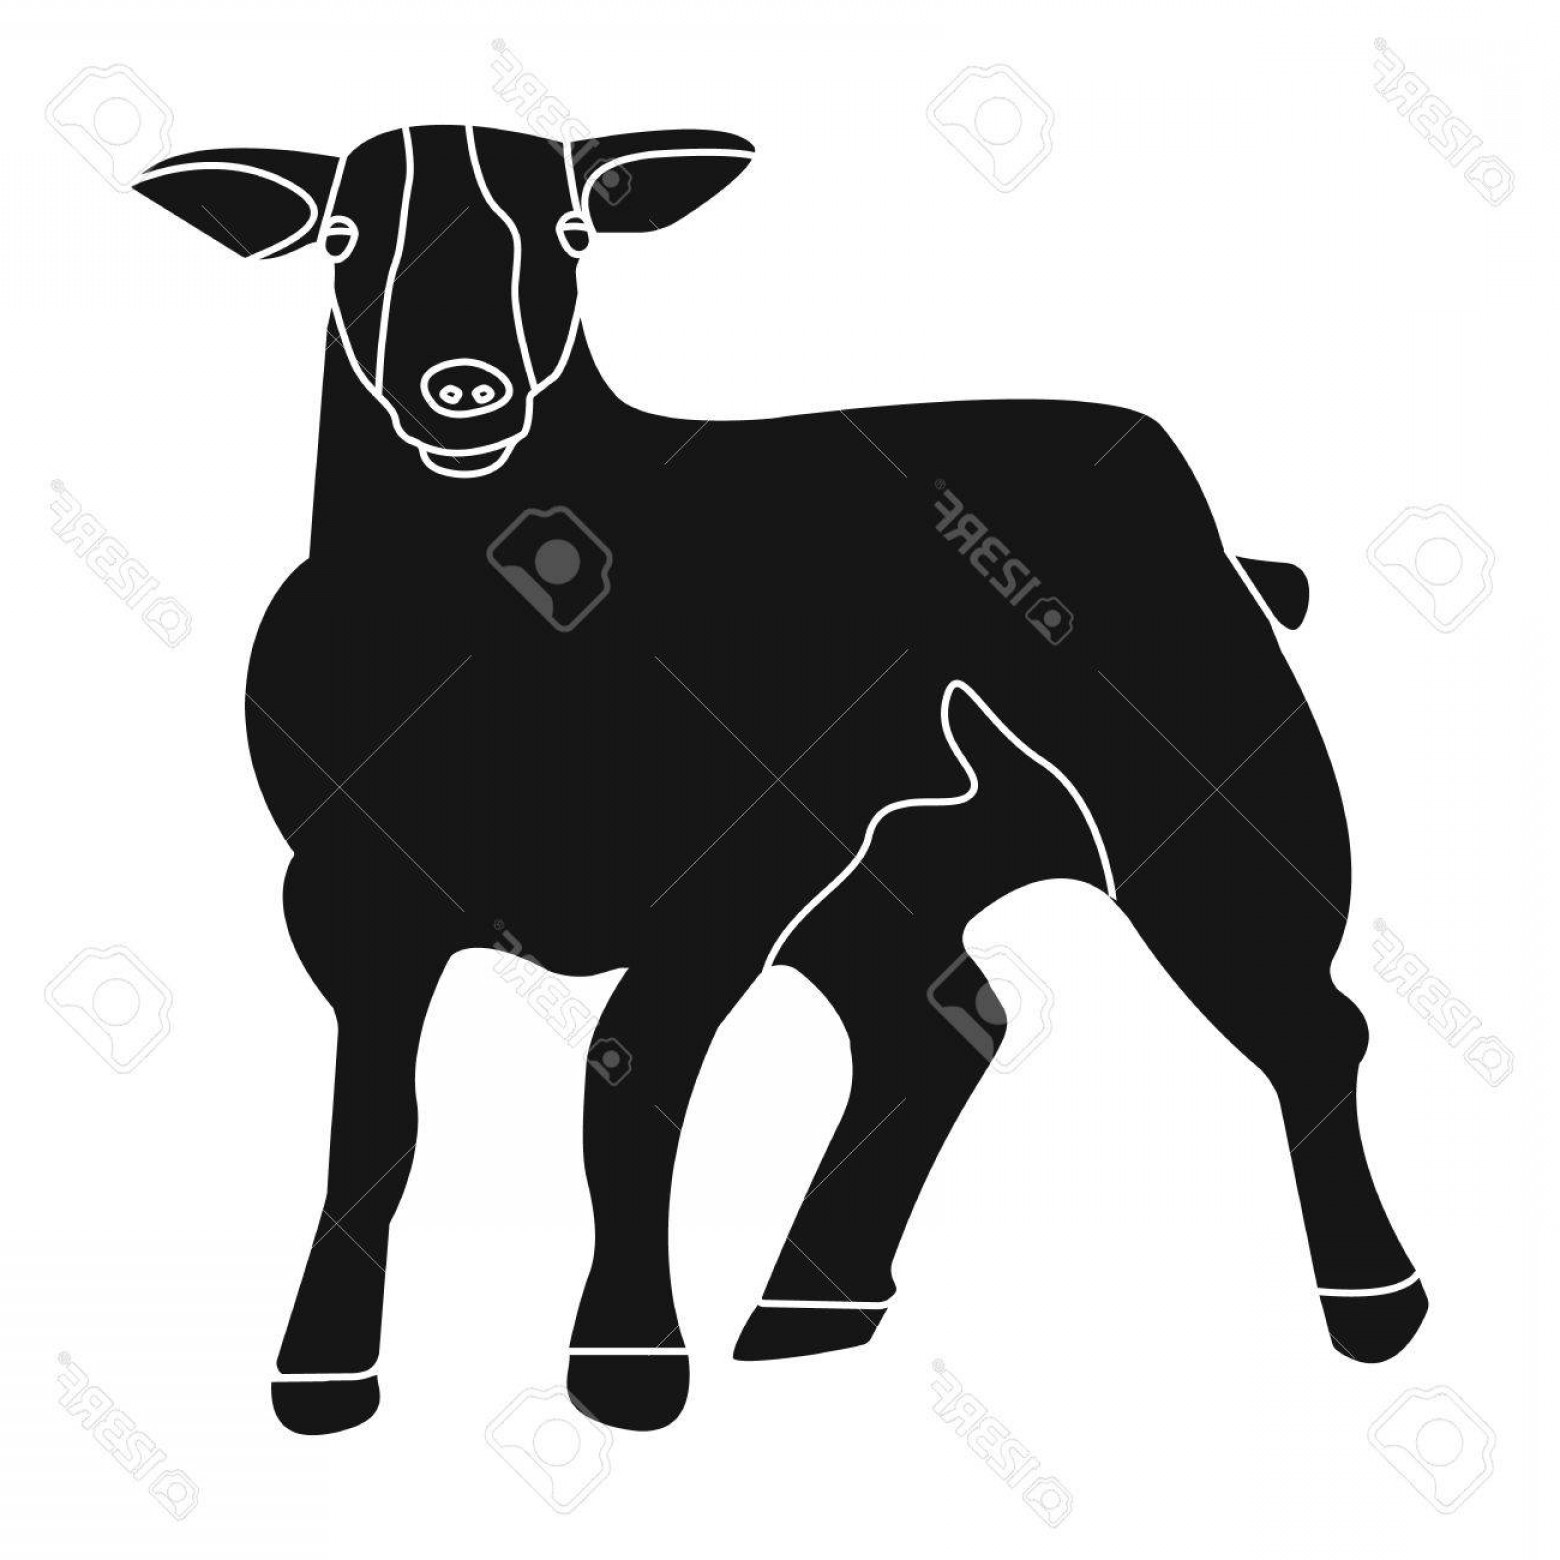 White Mountain Silhouette Vector Free: Photostock Vector Little White Mountain Sheep Scottish Fold Sheep Scotland Single Icon In Black Style Vector Symbol St